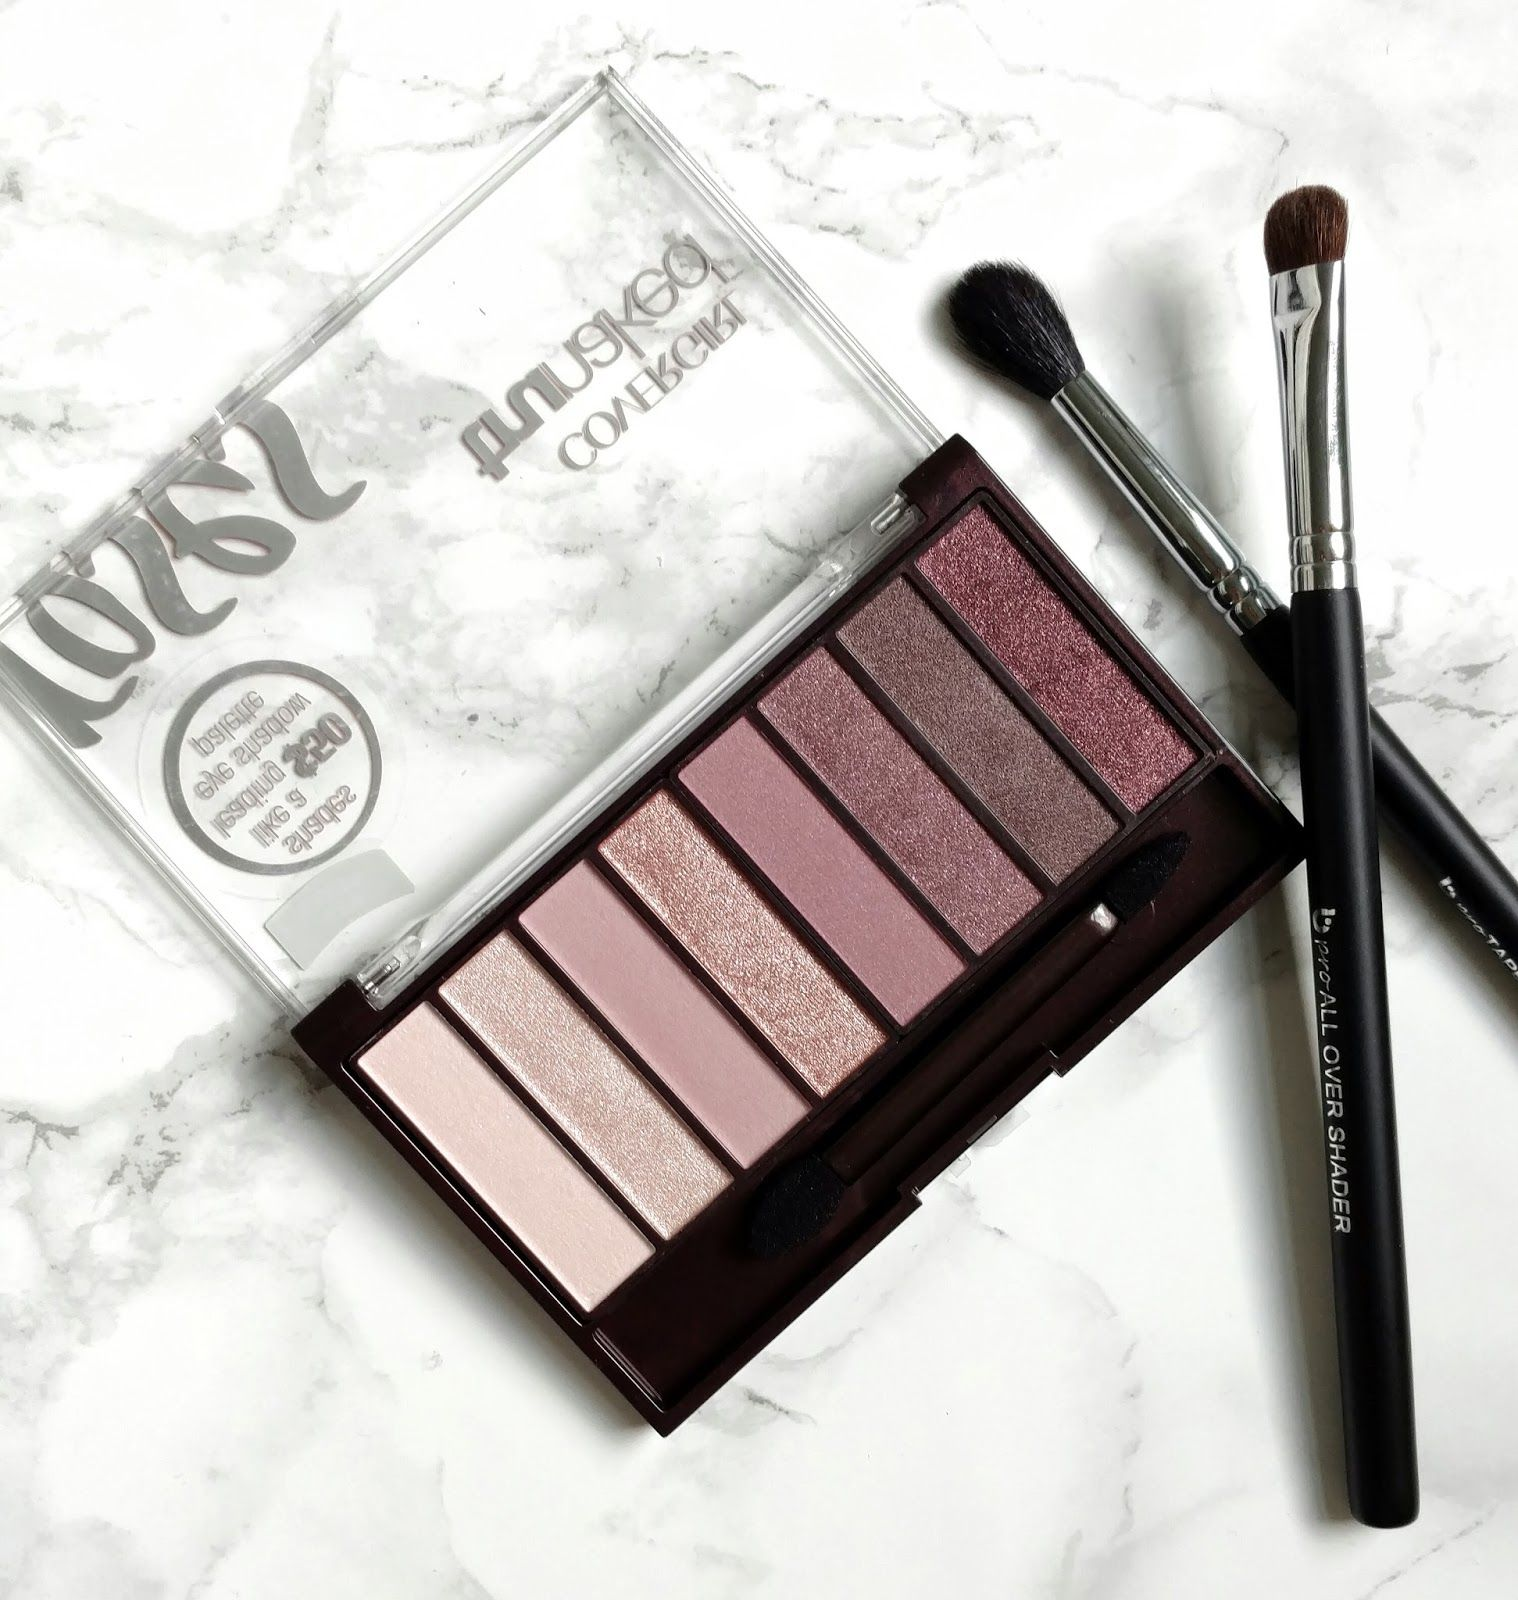 Covergirl TruNaked Roses Palette Review Cover girl